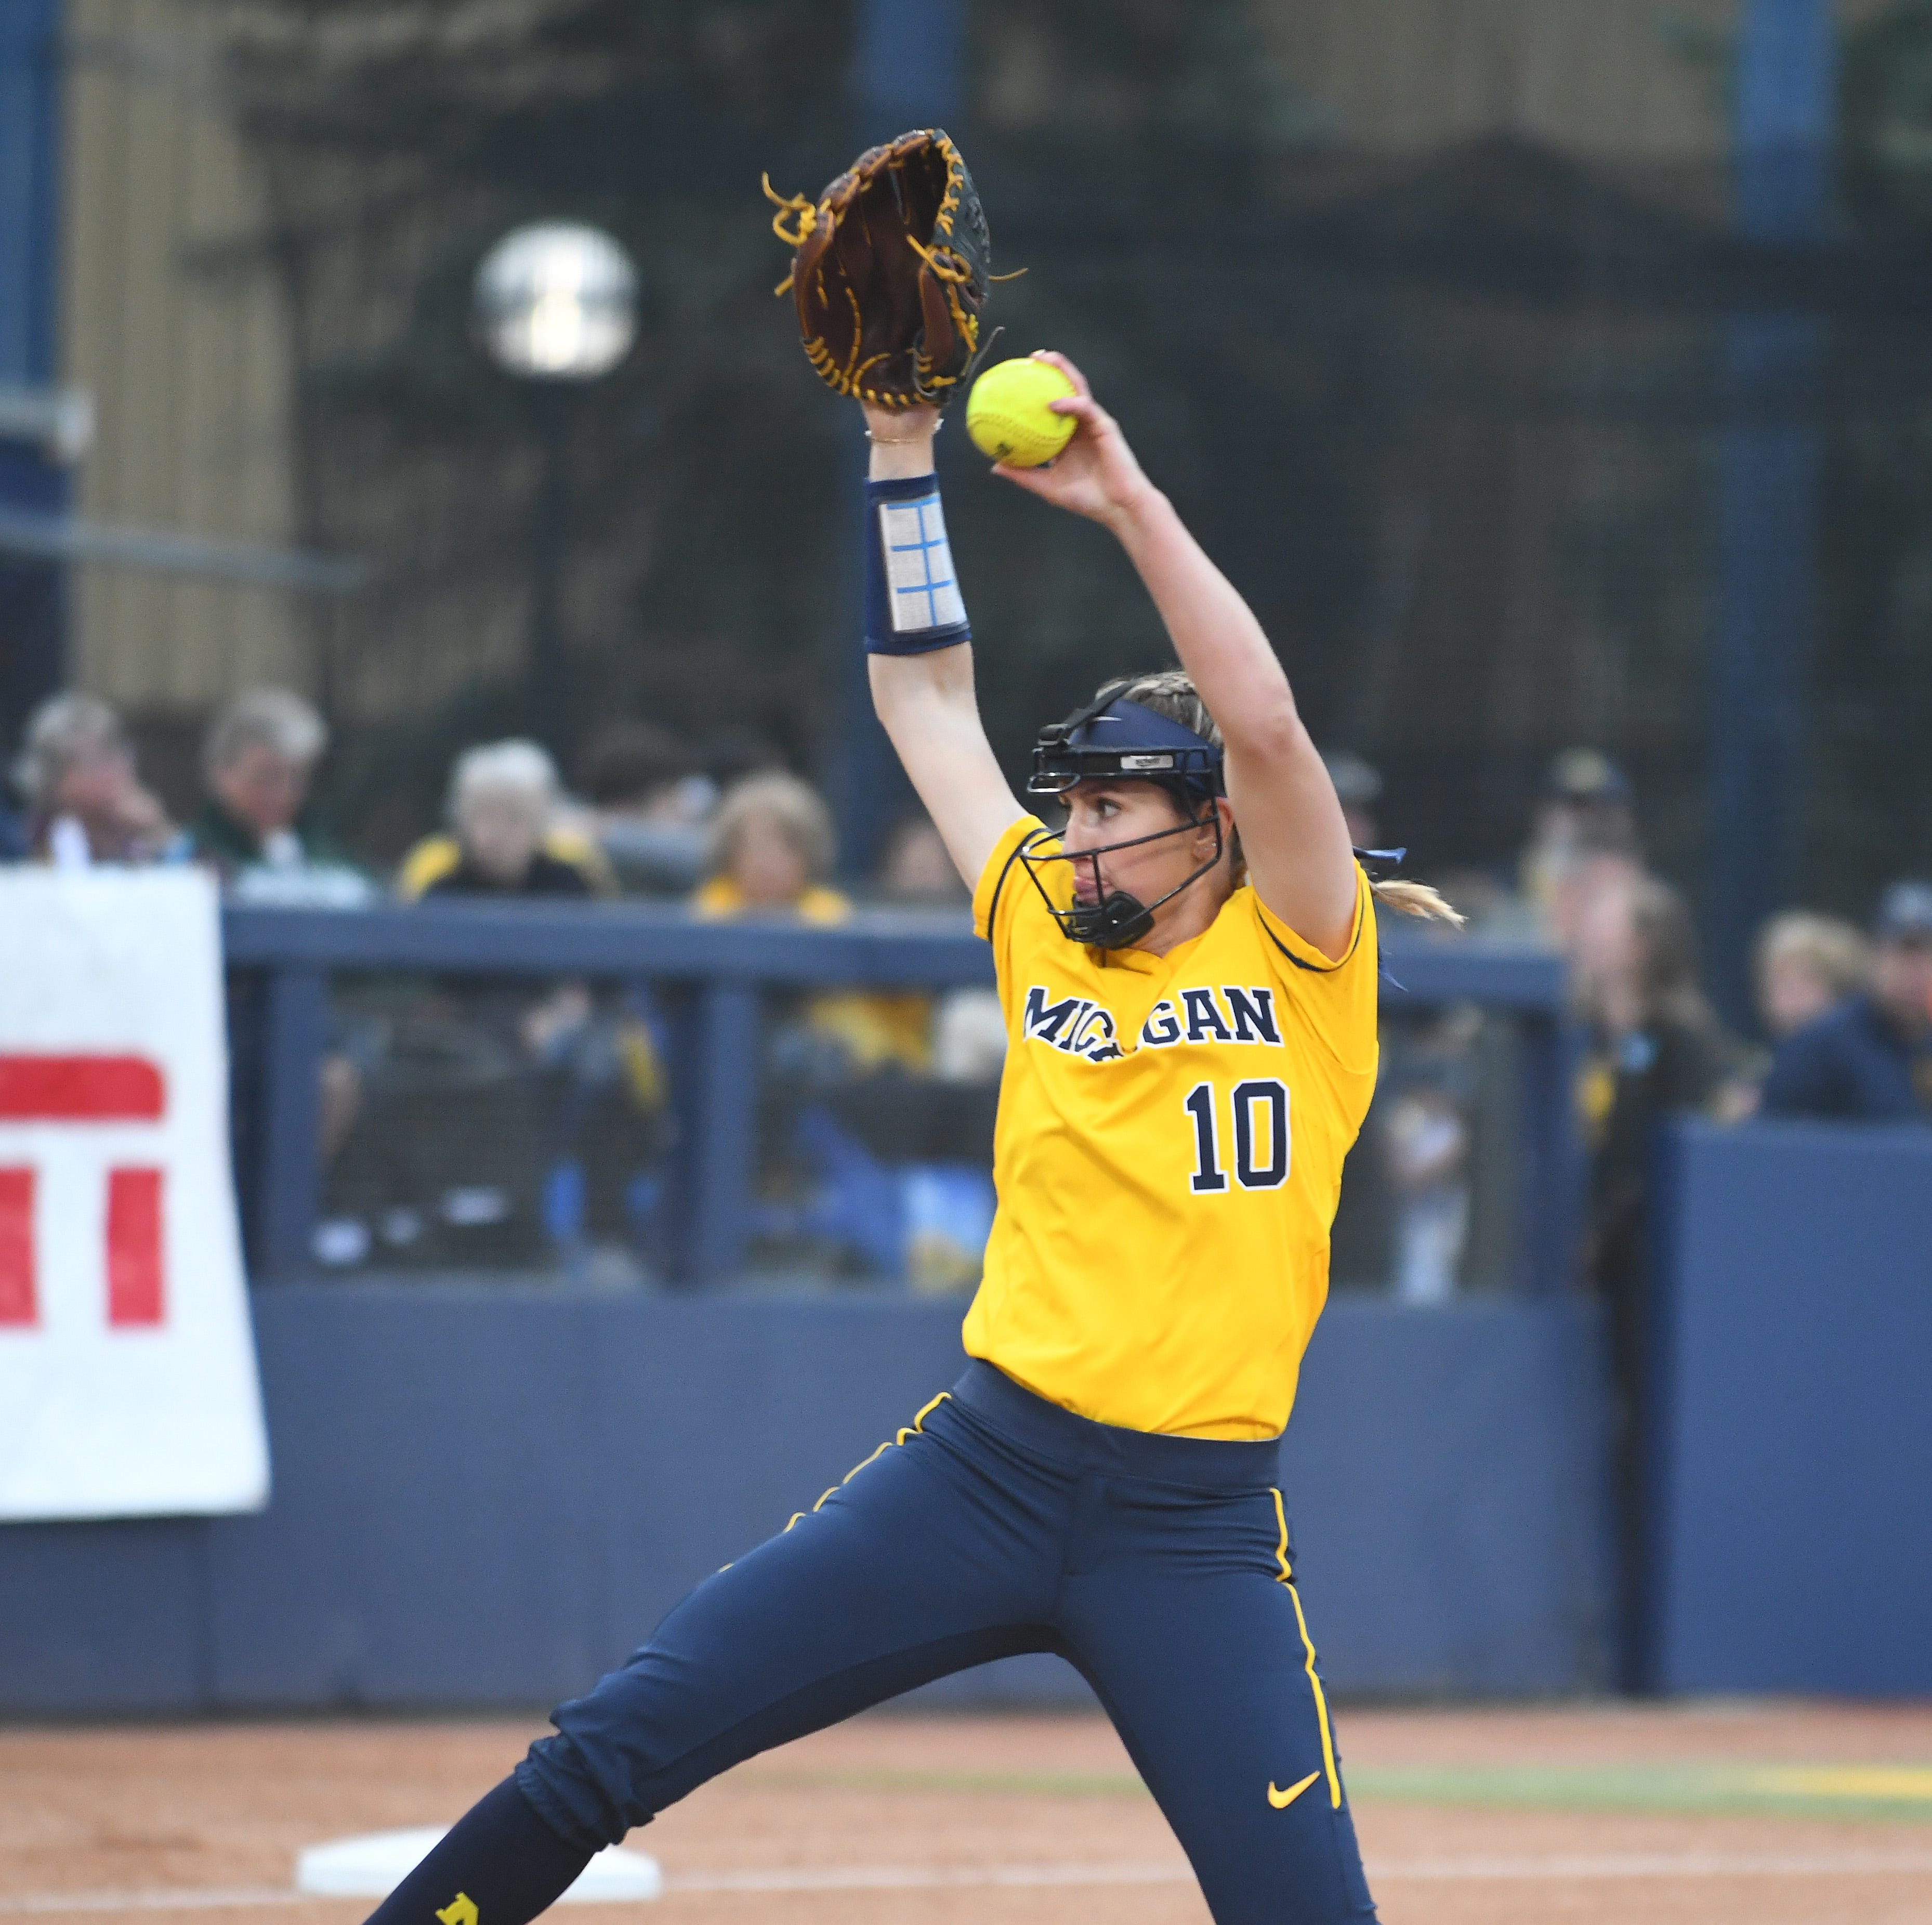 Arms duel: Michigan softball prevails in 12-inning regional marathon